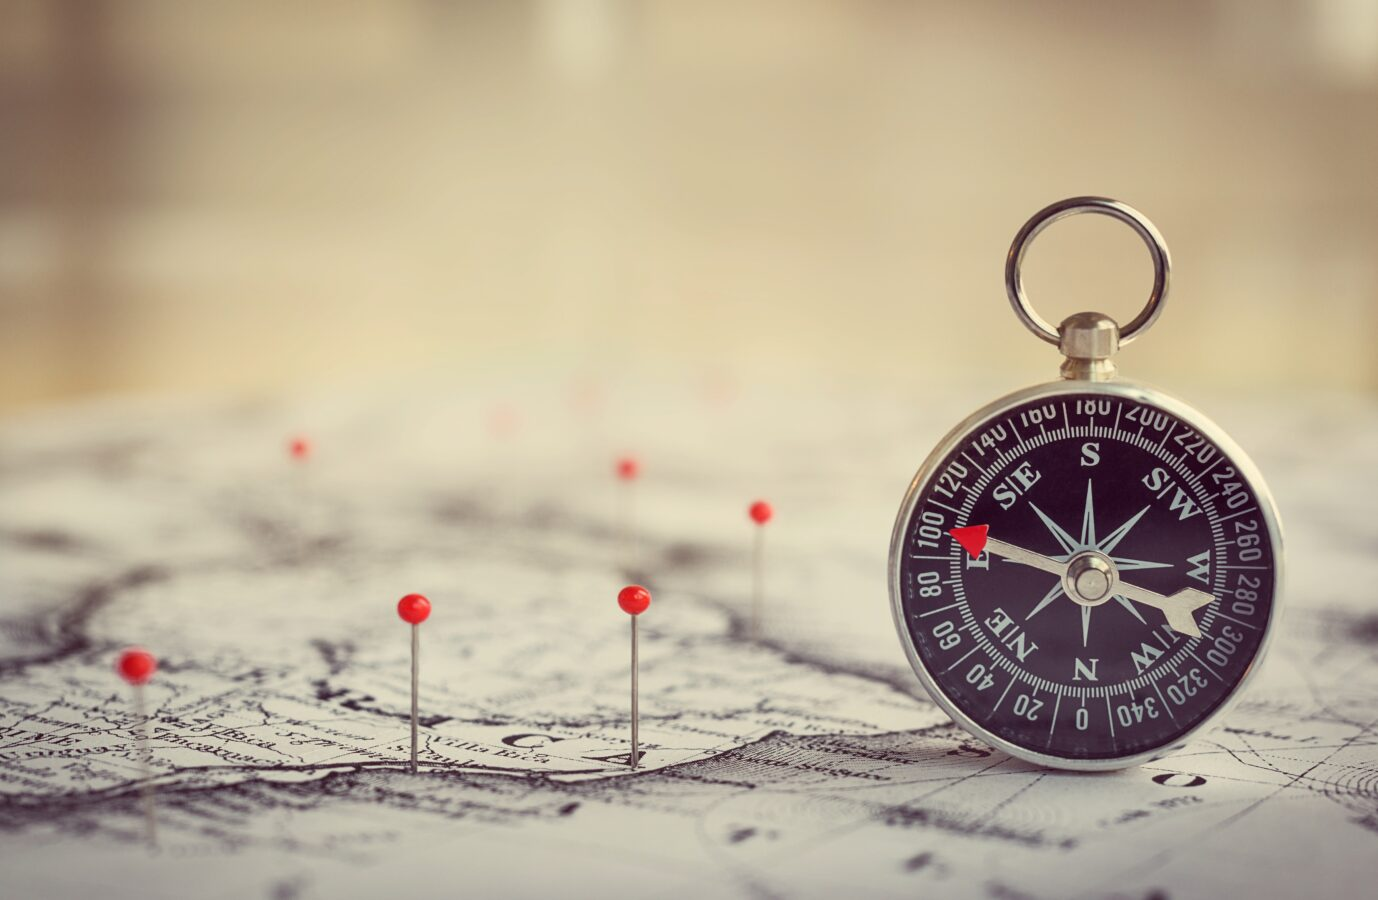 A compass and a map represent the customer journey management.